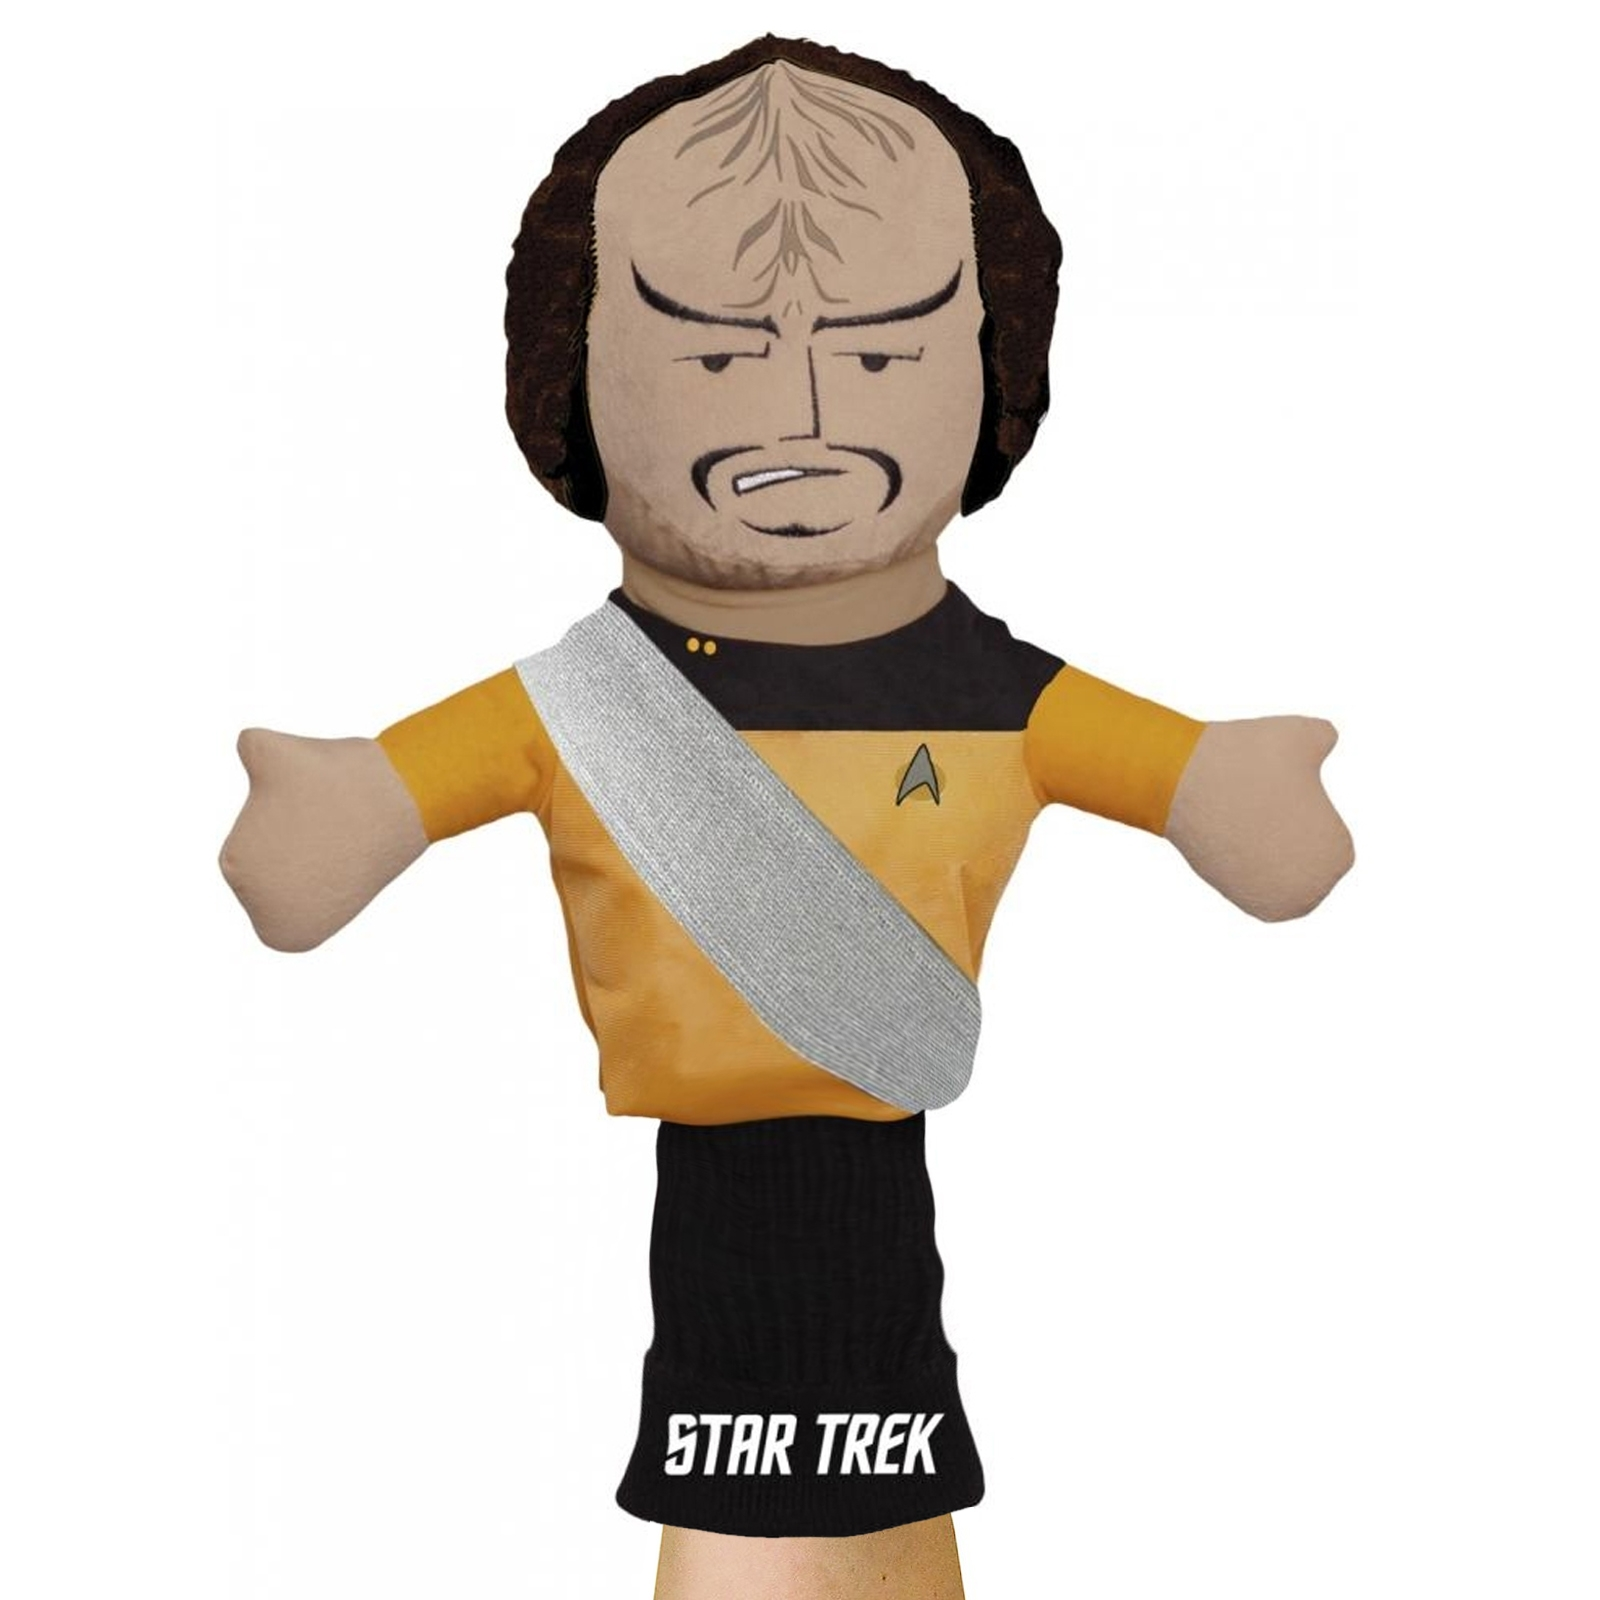 licensed star trek hand puppet figure for kids self expression klingon star trek toys children's puppet klingon voyager enterprise